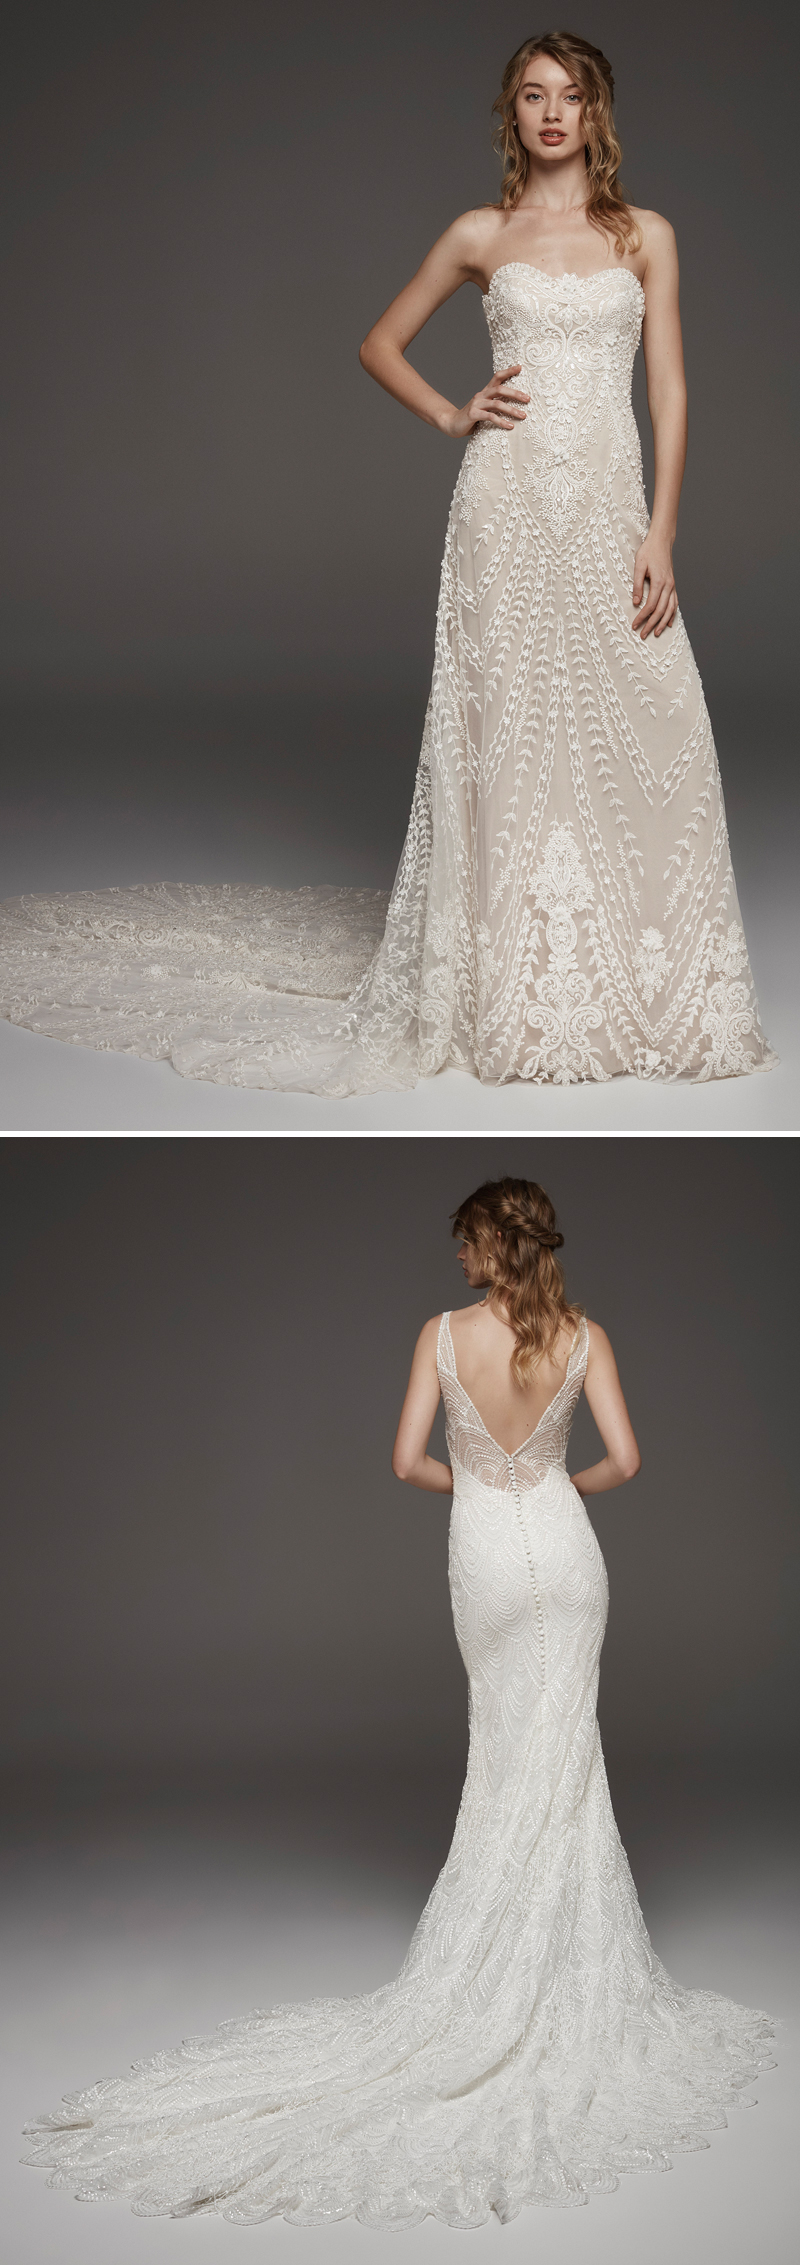 Personal Style: Vera Wang Personal Style: Vera Wang new pictures